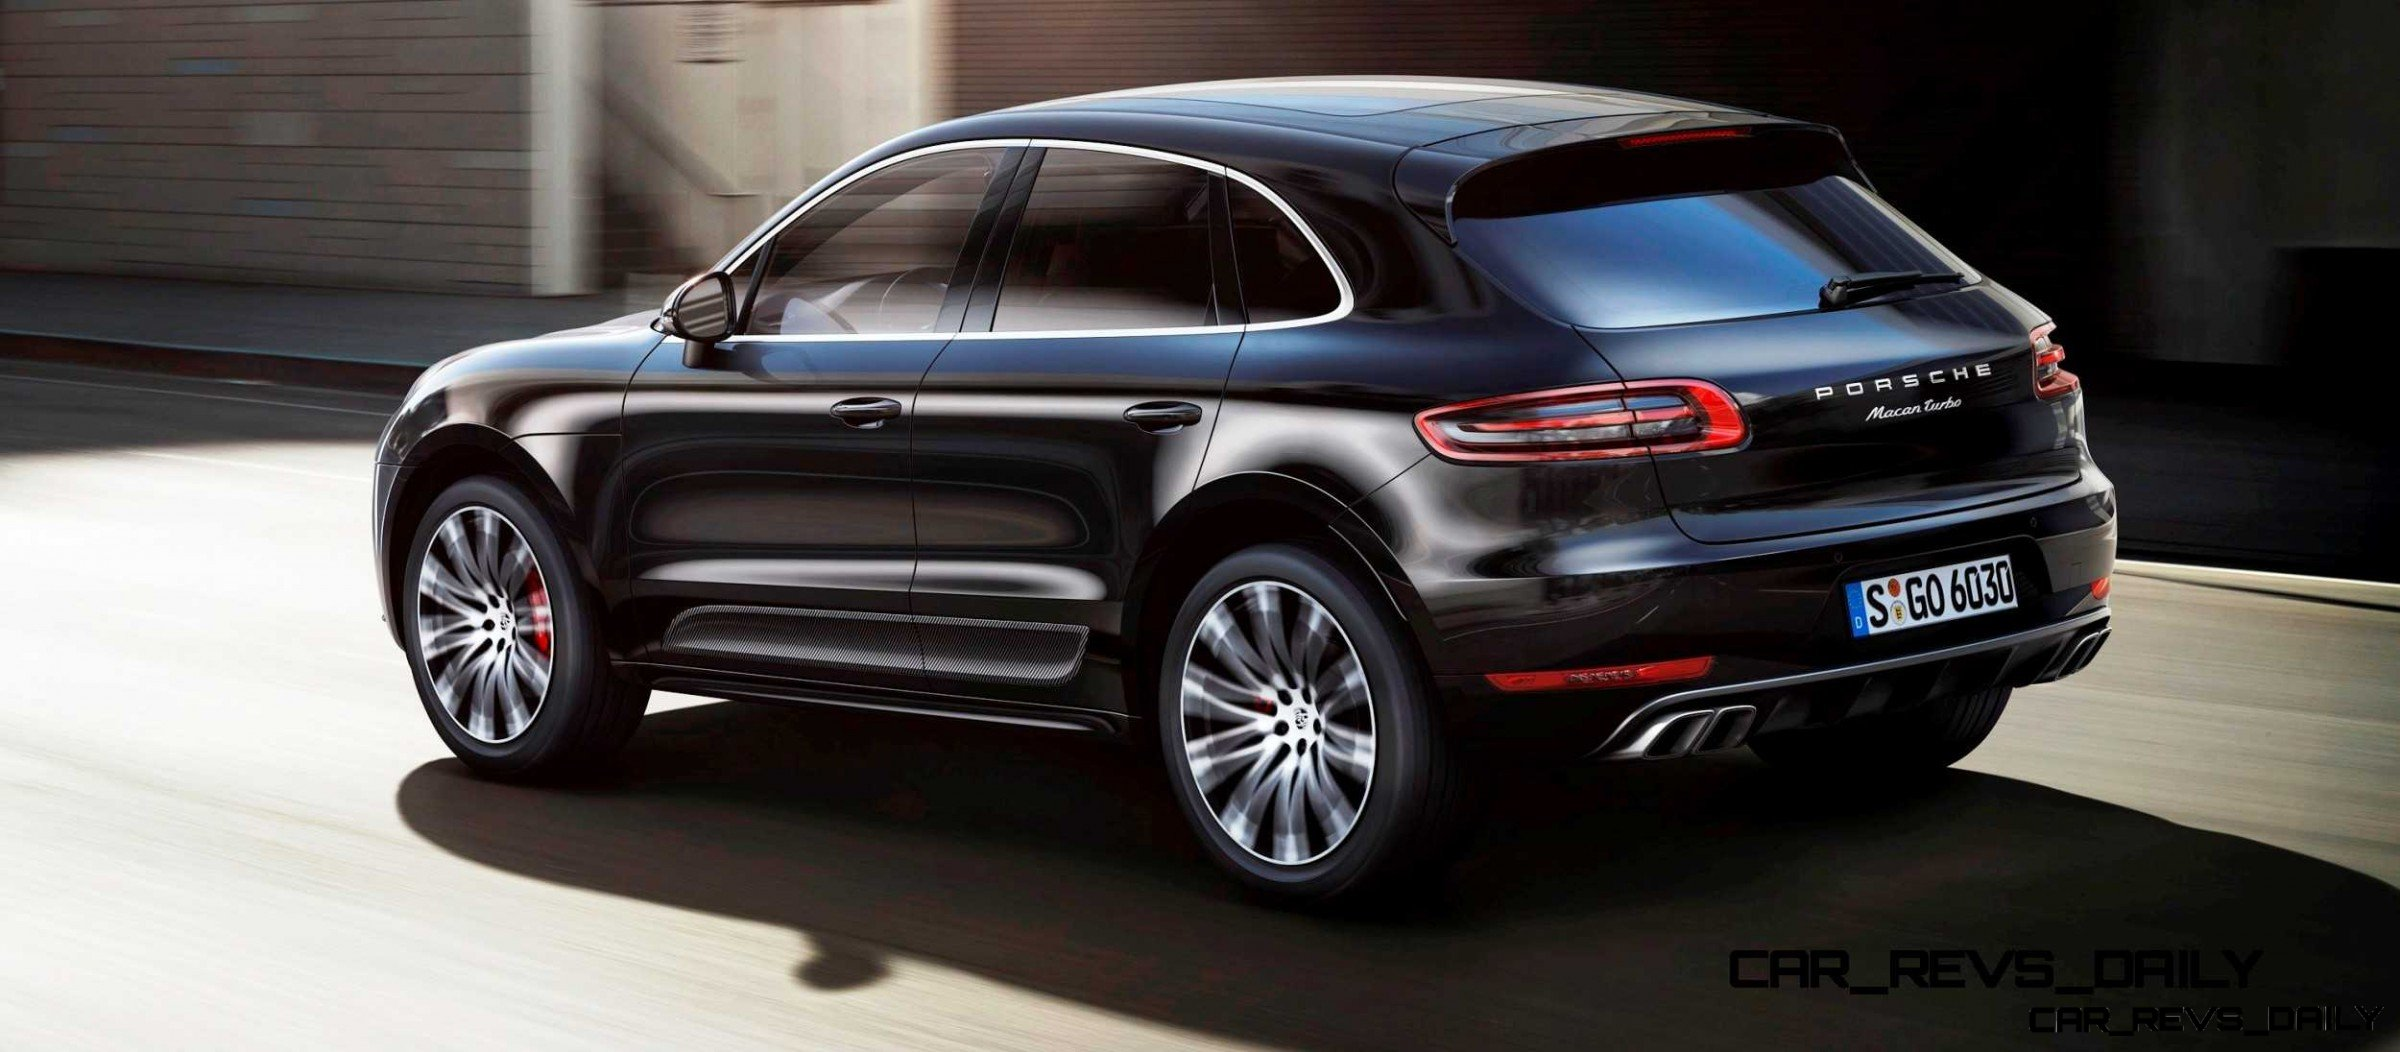 2014 Porsche Macan Turbo and Macan S - Official Debut Photos13